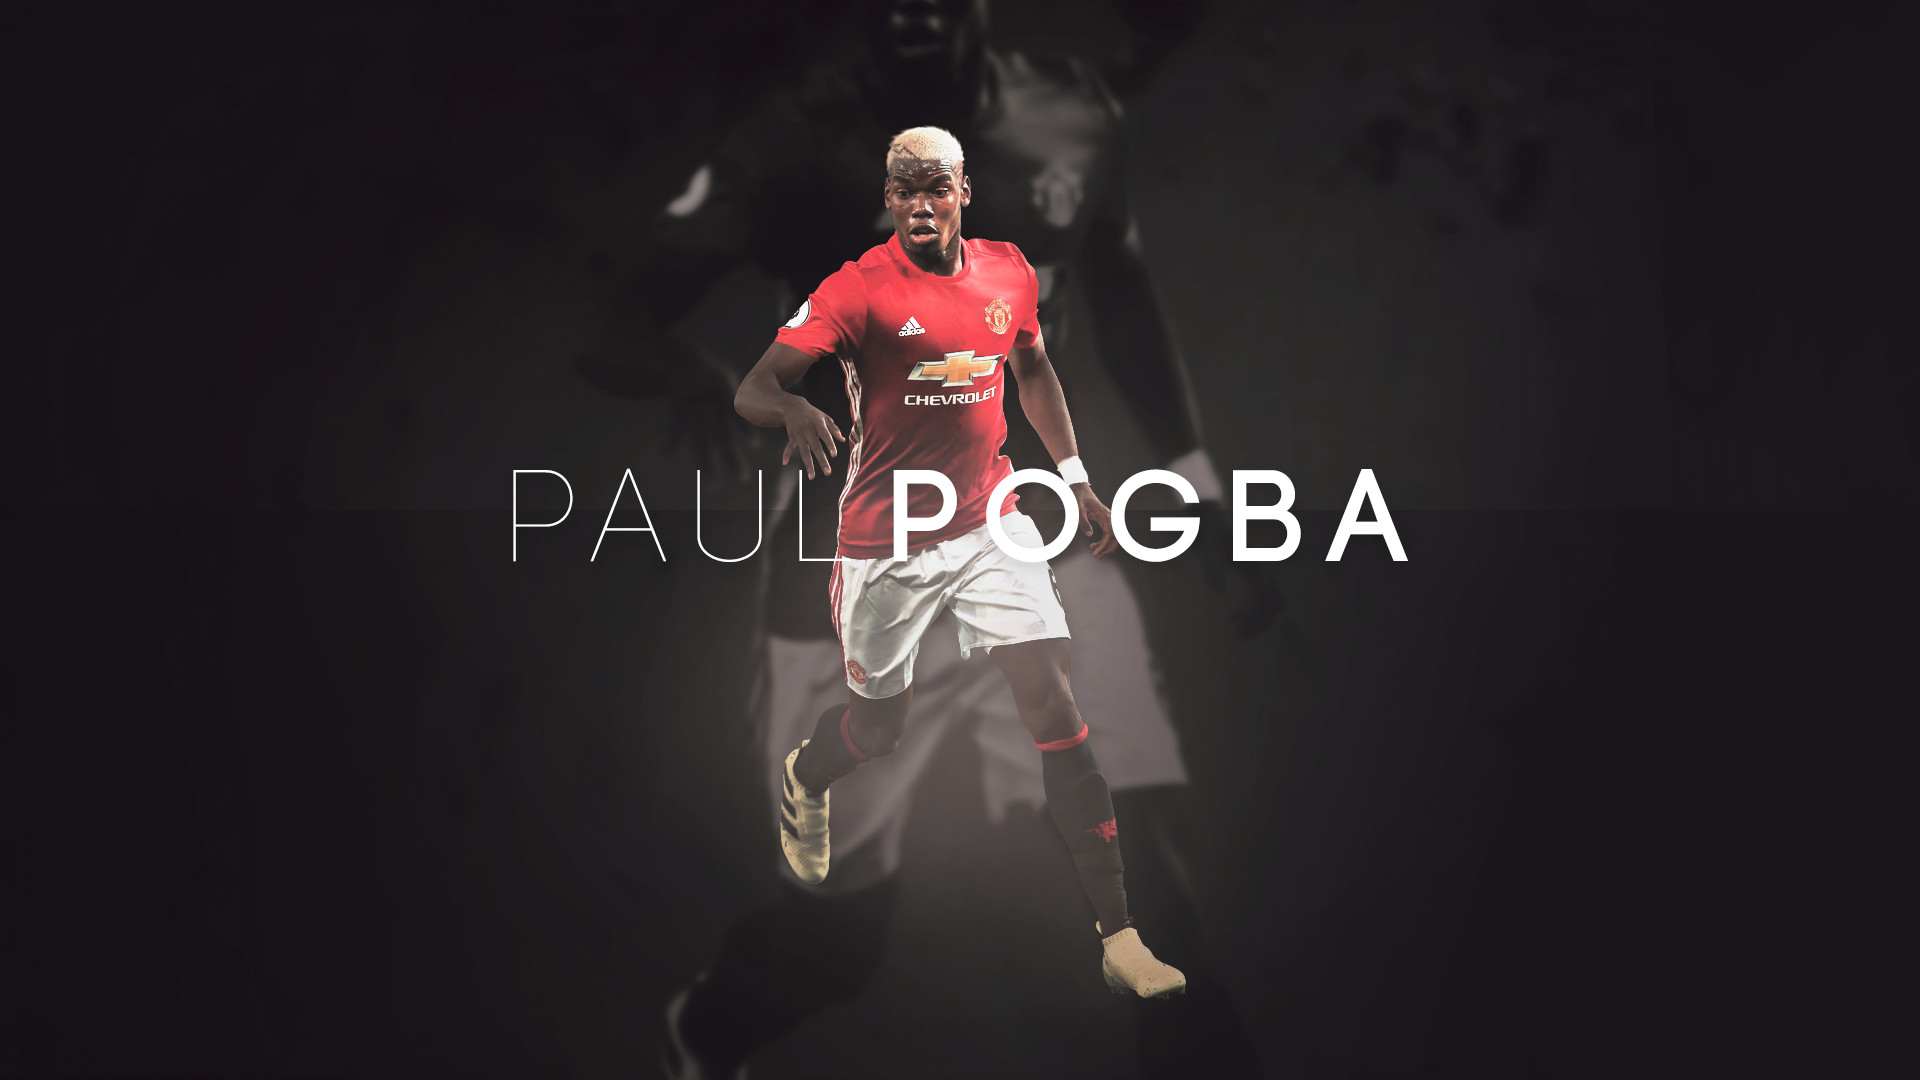 Manchester United Wallpaper Iphone X Pogba Wallpapers 81 Images